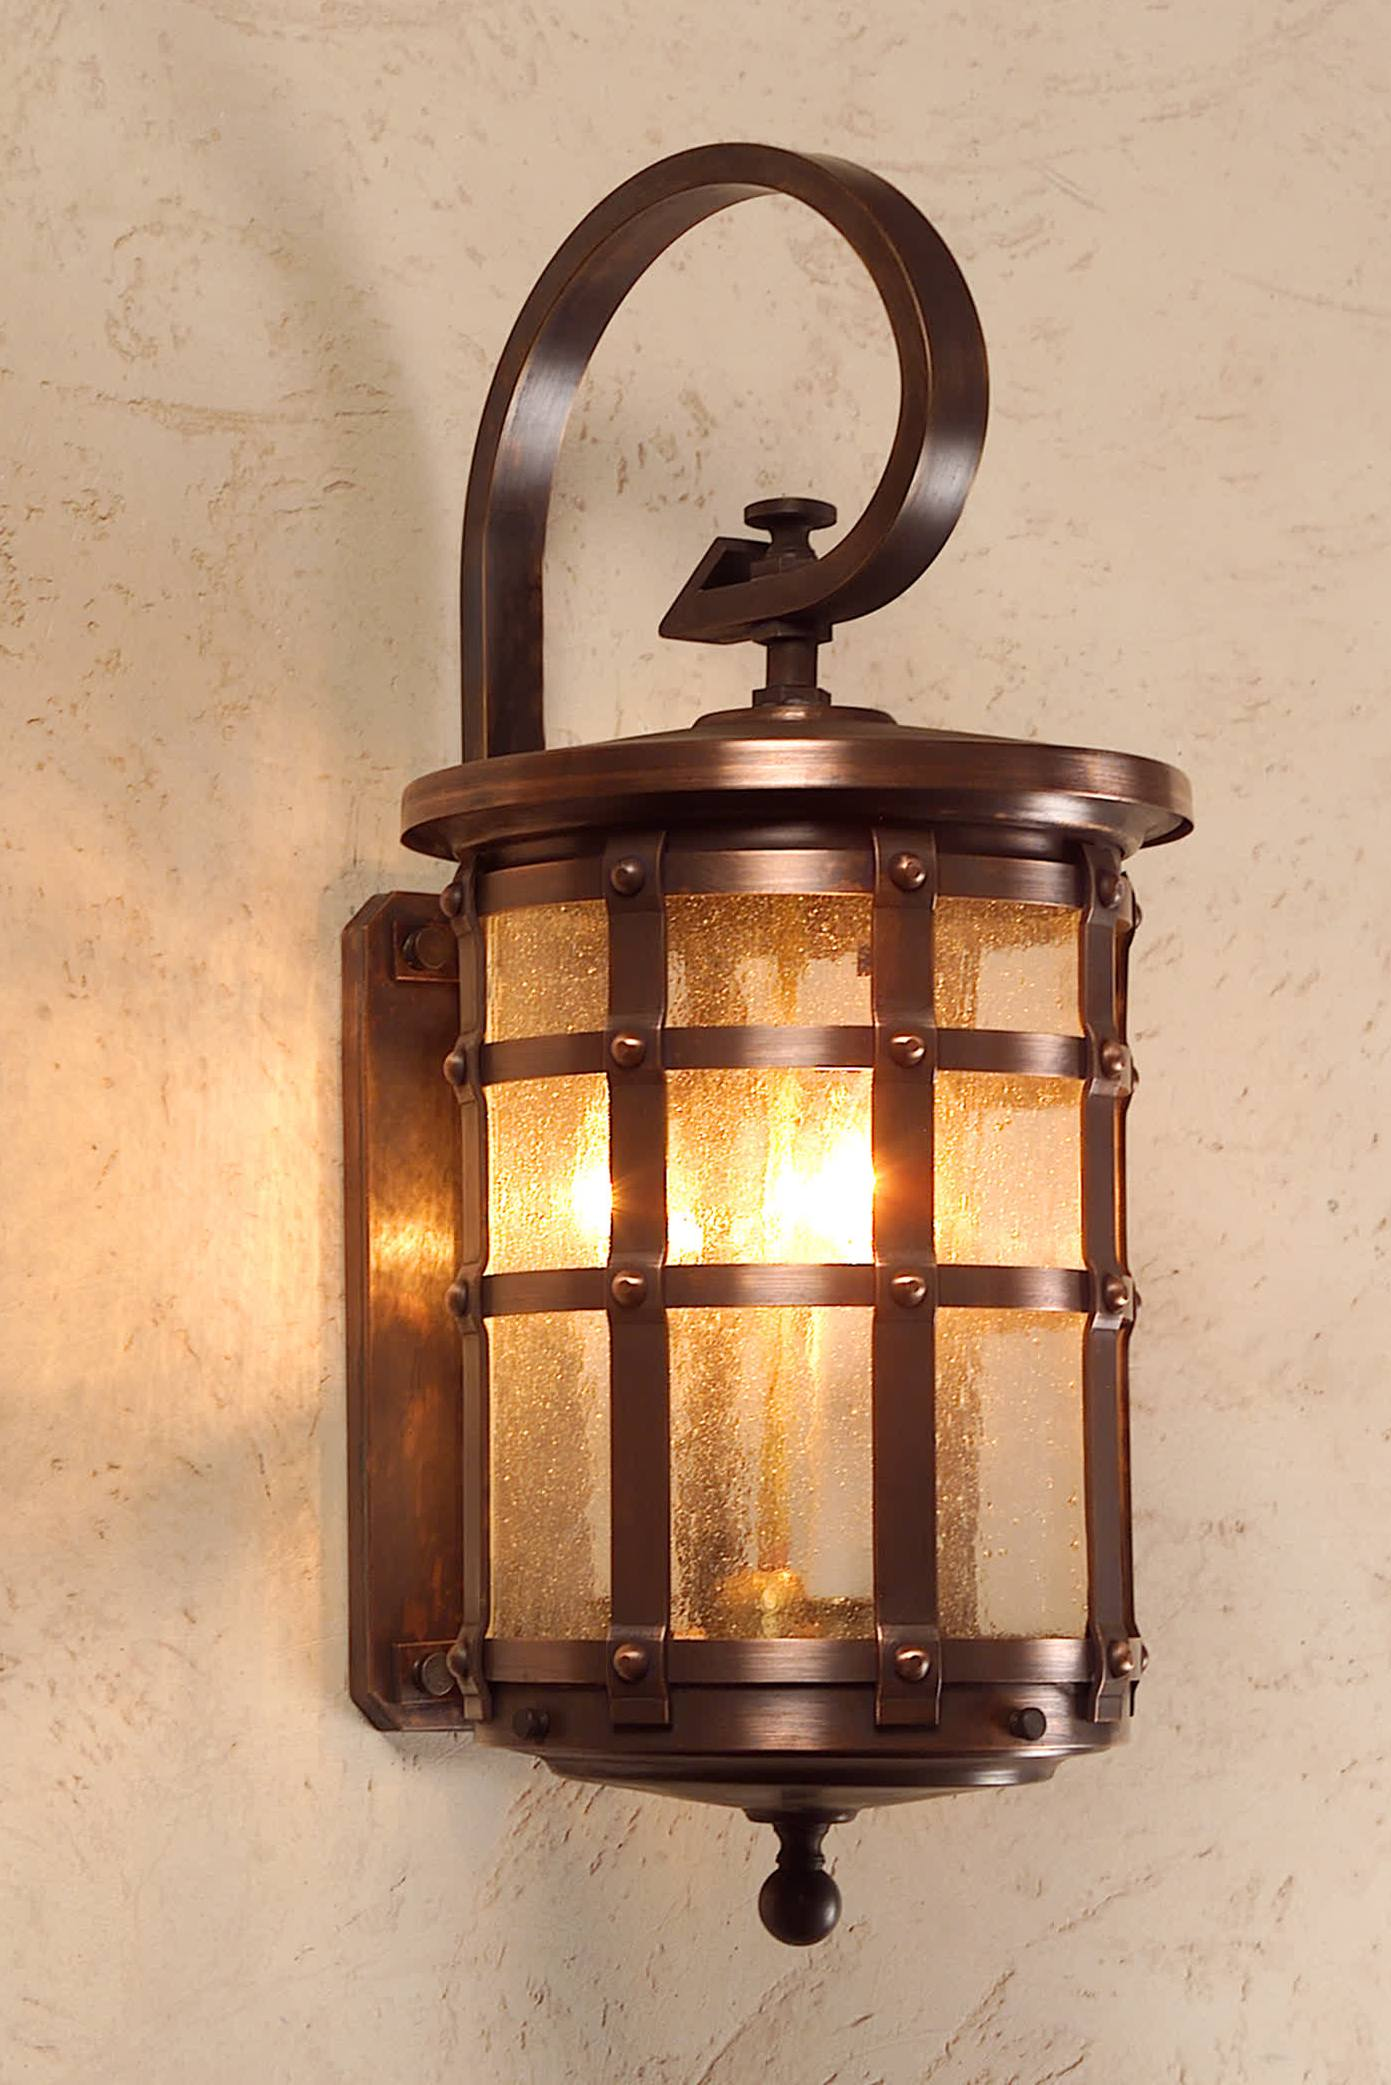 Tudor Style Copper Wall light & Lights English Style Lighting Fixtures